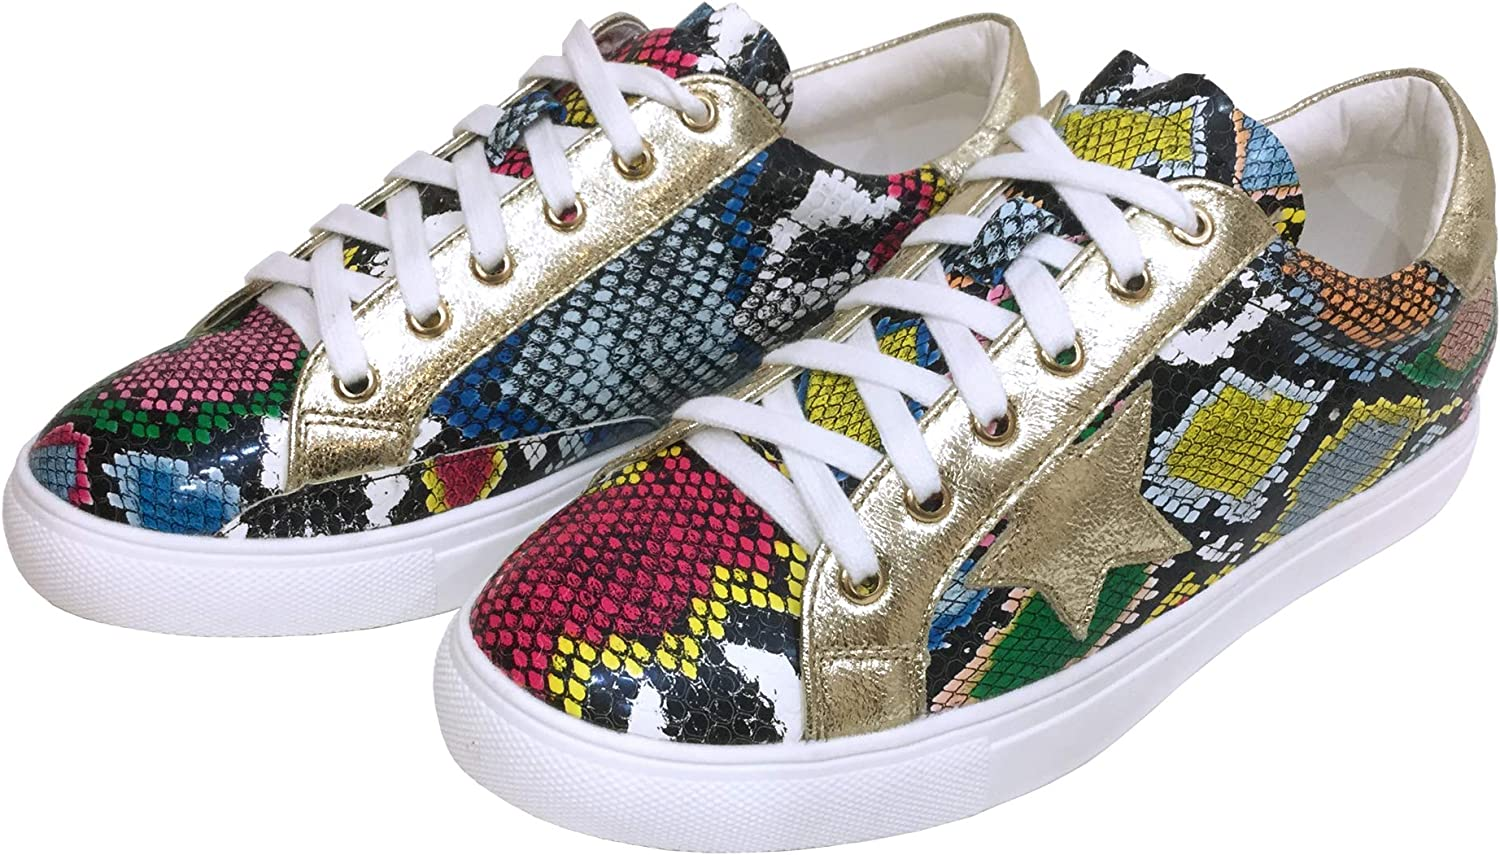 Women Classic Two Tone Star Lace up Fashion Sneakers (6, Multi Snake)